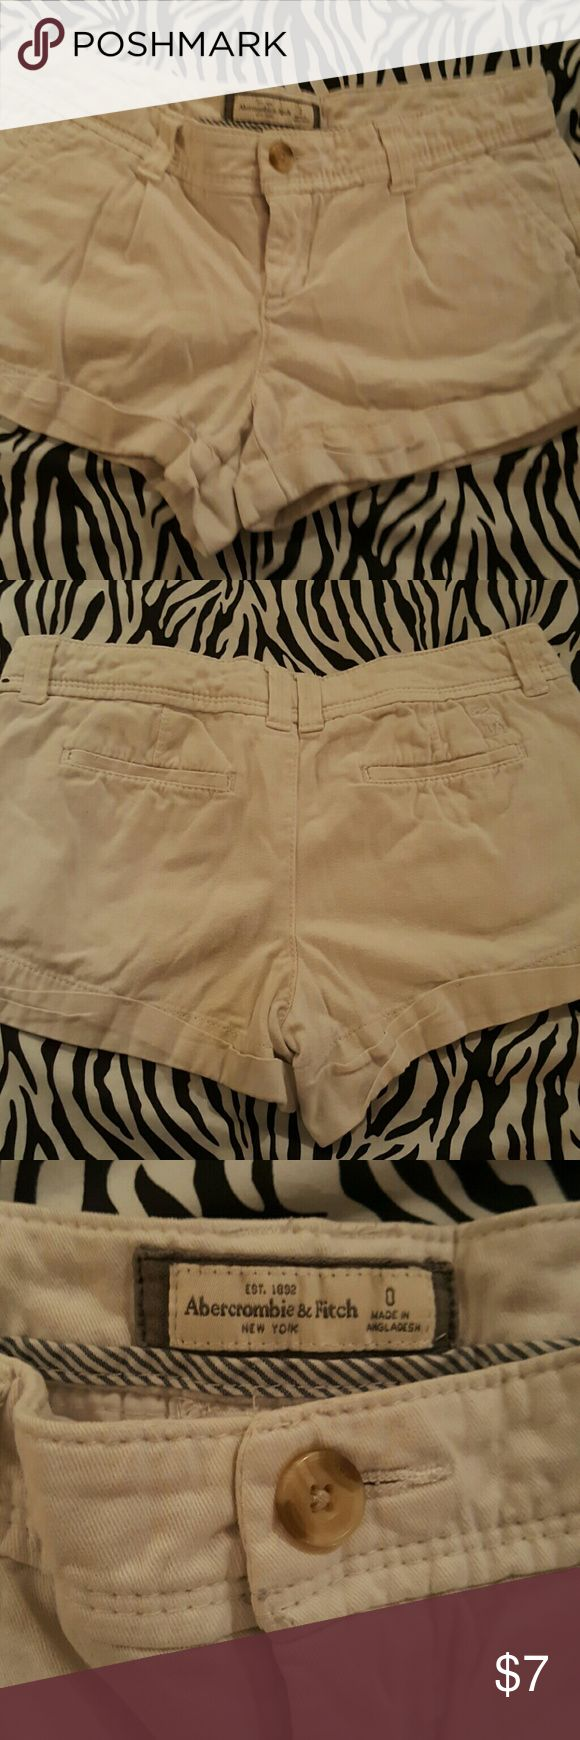 Abercrombie and Fitch beige shorts size:0 Gently used from a non smoking home.  Abercrombie and Fitch beige shorts size 0. Cute for the summer! Abercrombie & Fitch Shorts